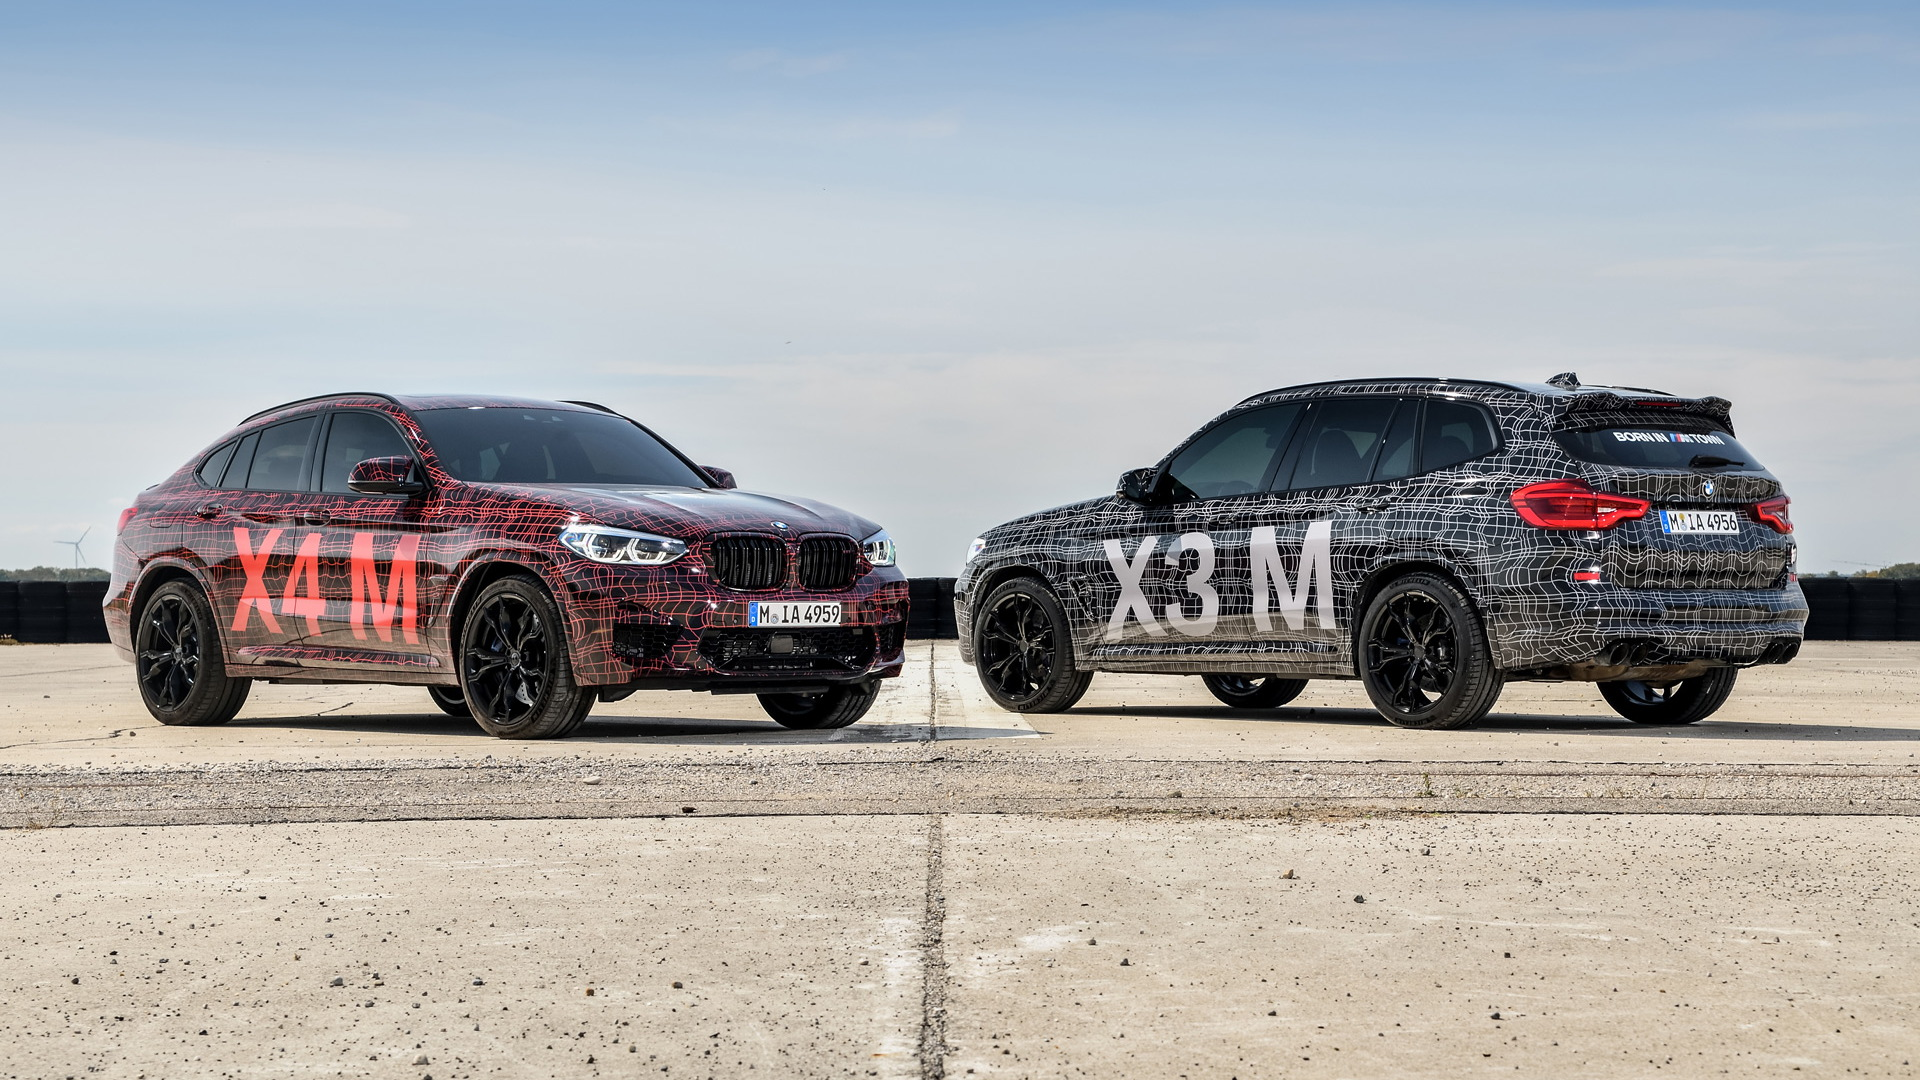 BMW X3 M and X4 M prototypes